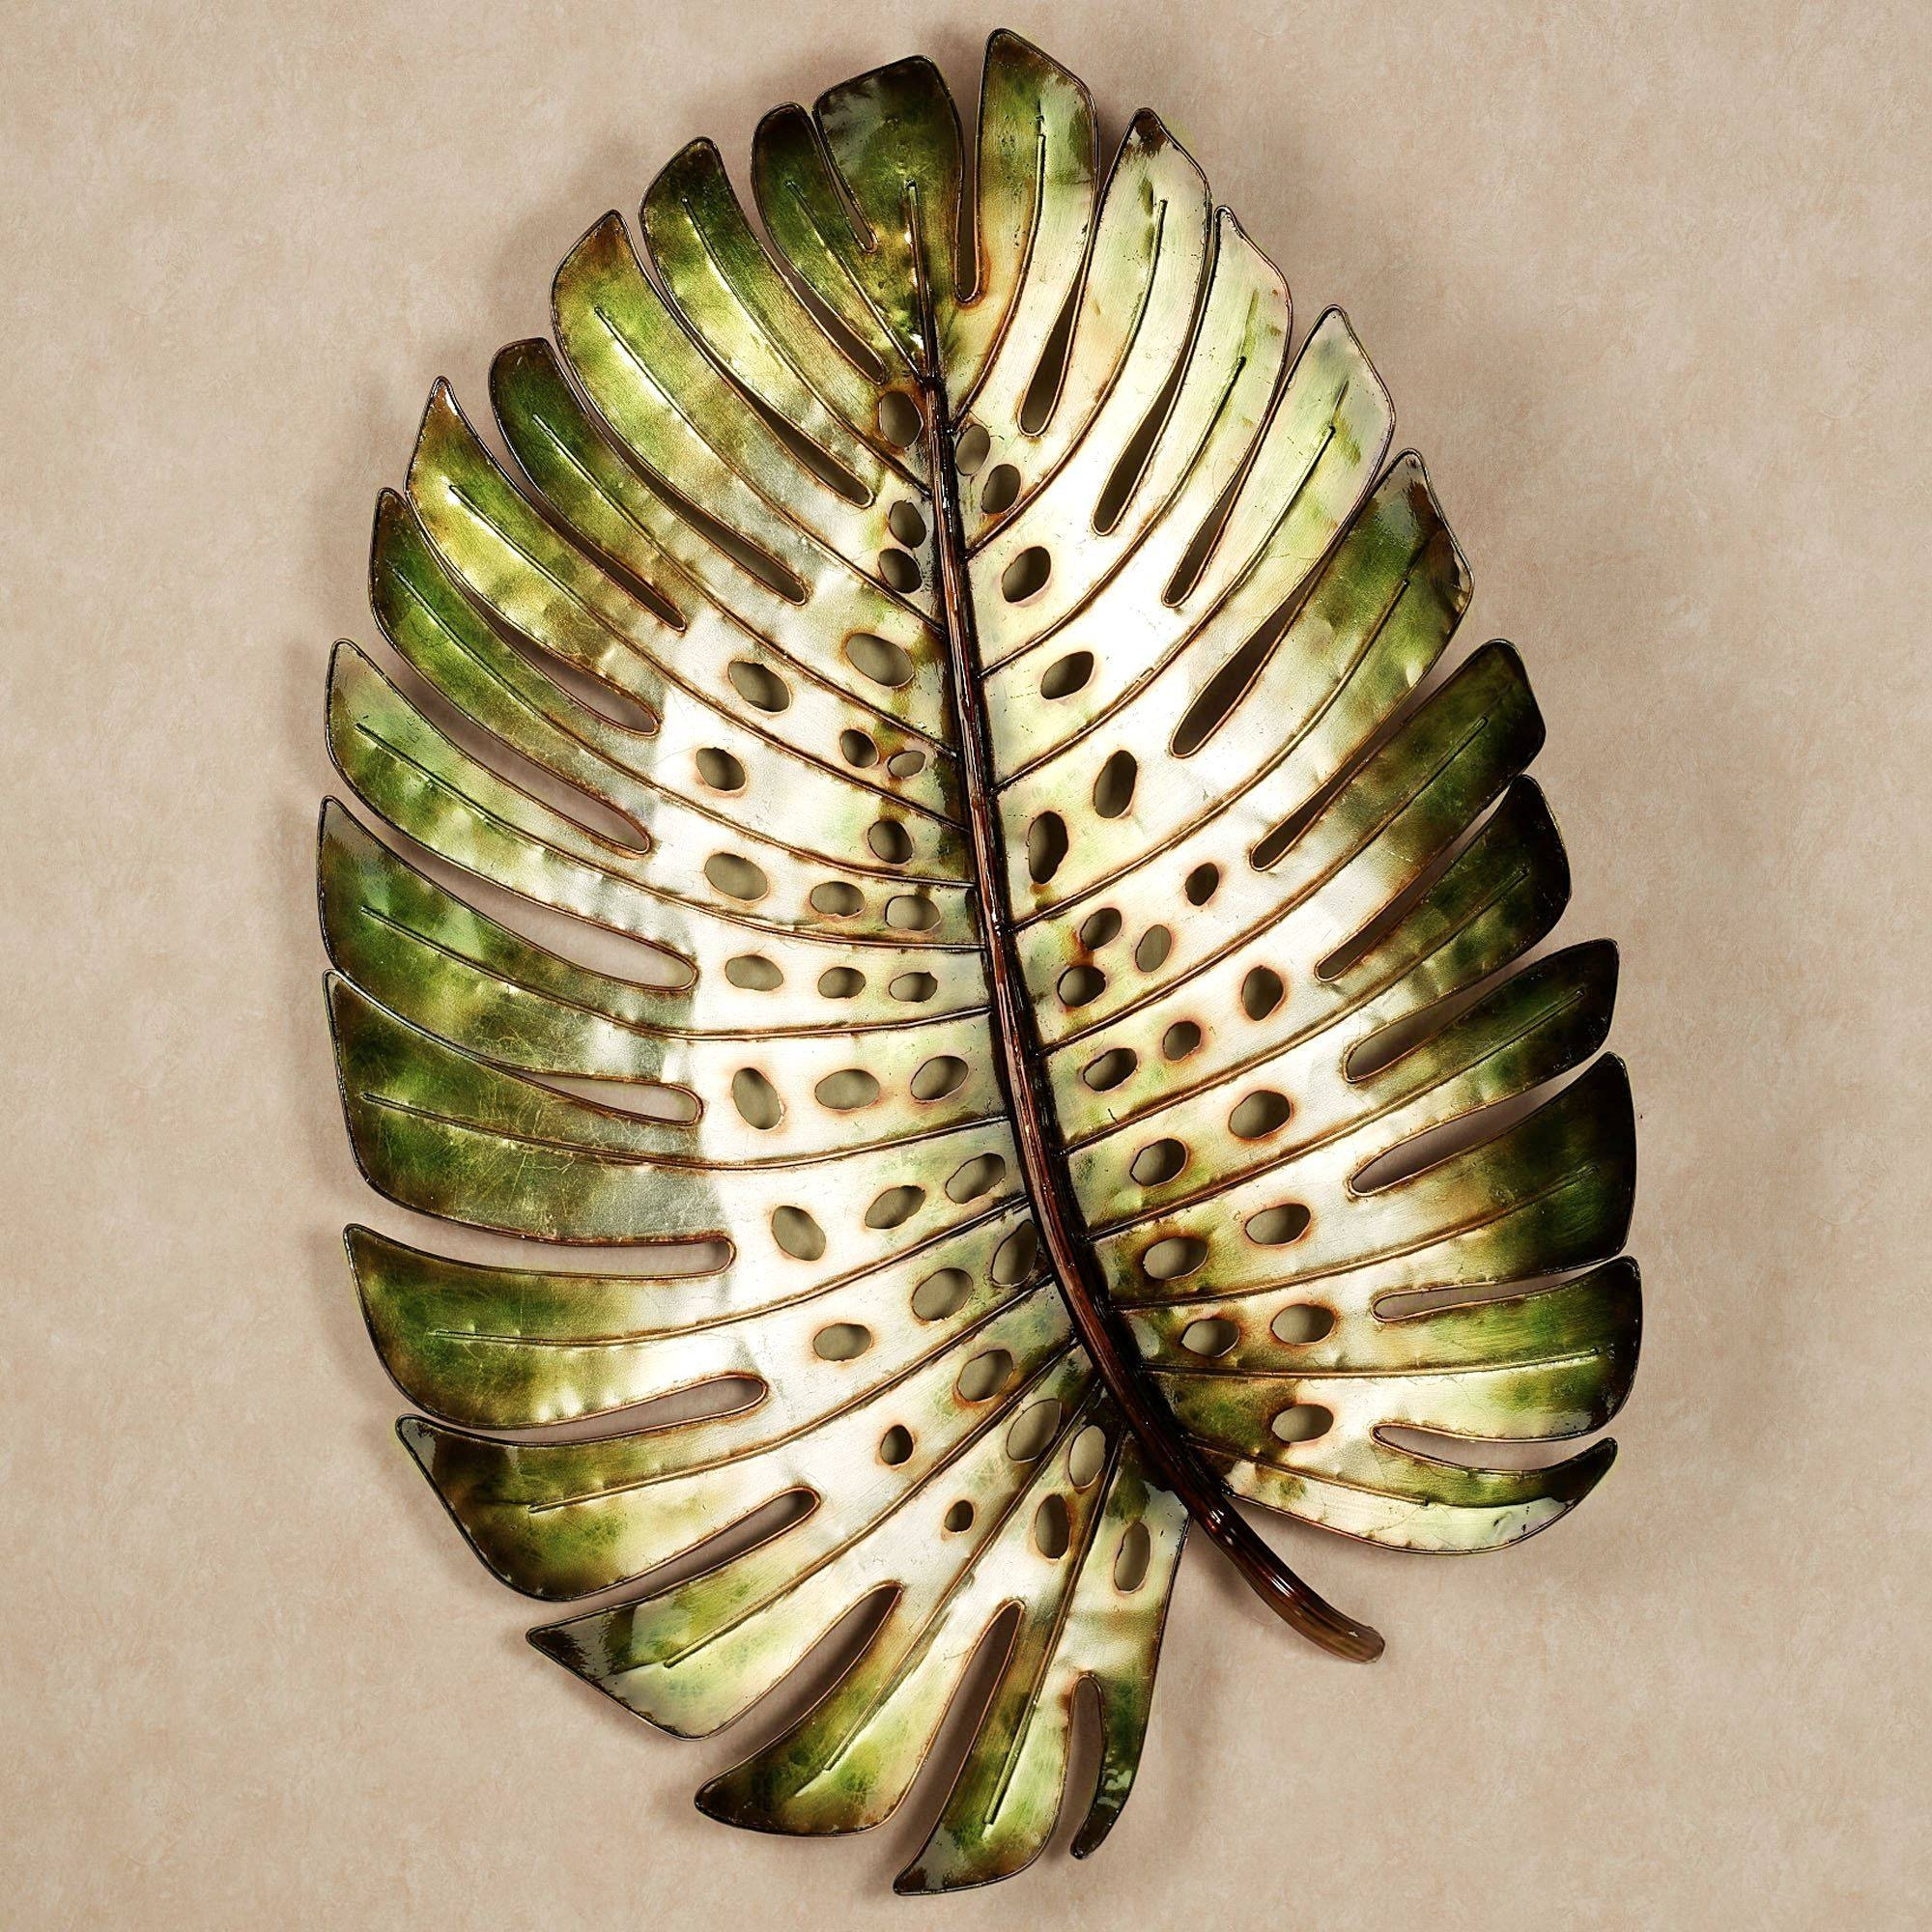 Wondrous Tropical Metal Wall Art Home Tropical Leaf Metal Design Intended For Most Up To Date Leaf Metal Wall Art (View 20 of 20)